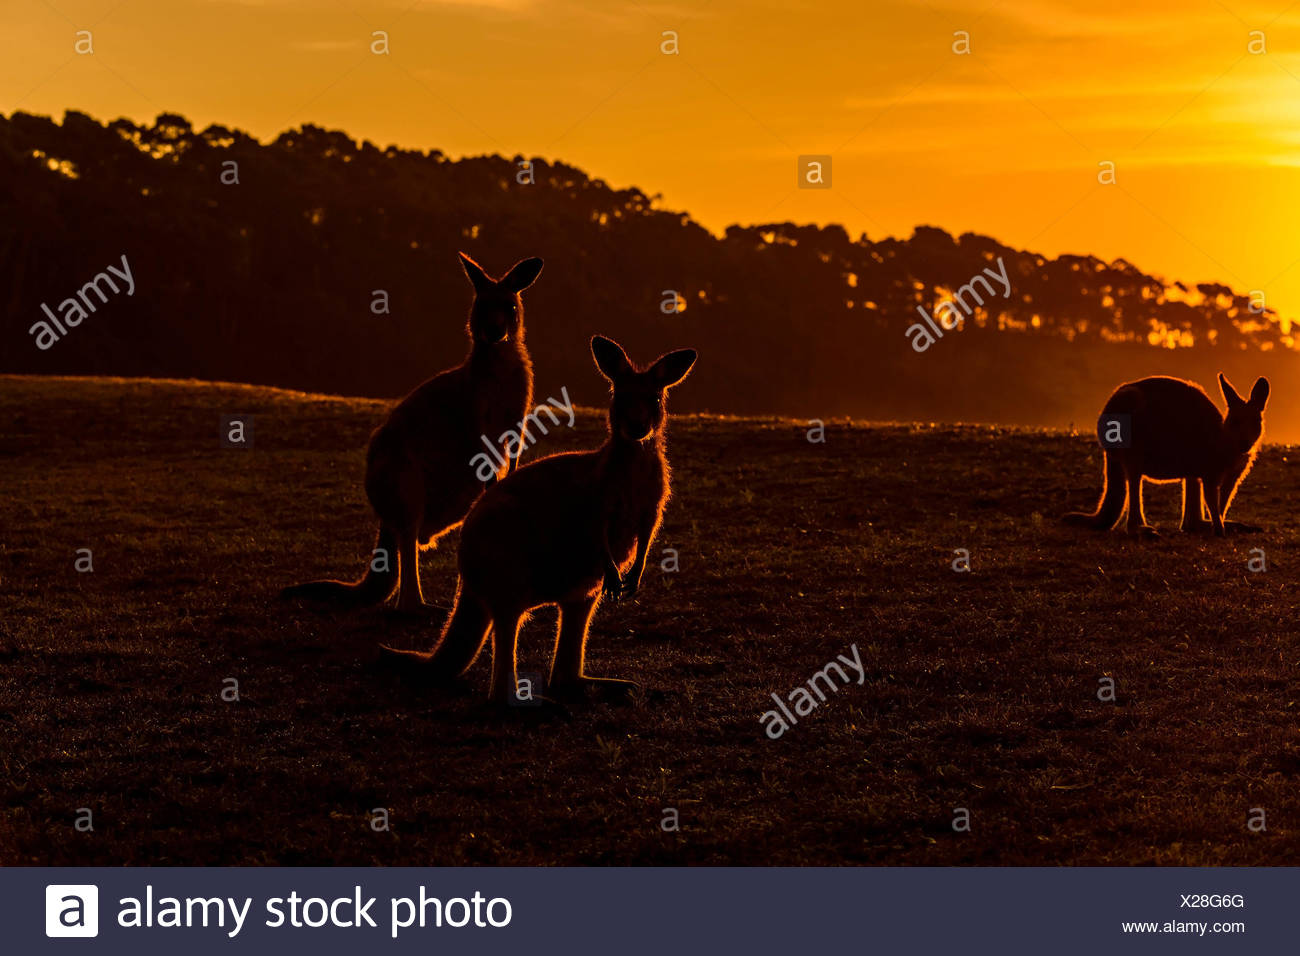 Grigio canguro, Macropus giganteus, gruppo di animali di Sunrise, Murramarang National Park, New South Wales, Australia Immagini Stock